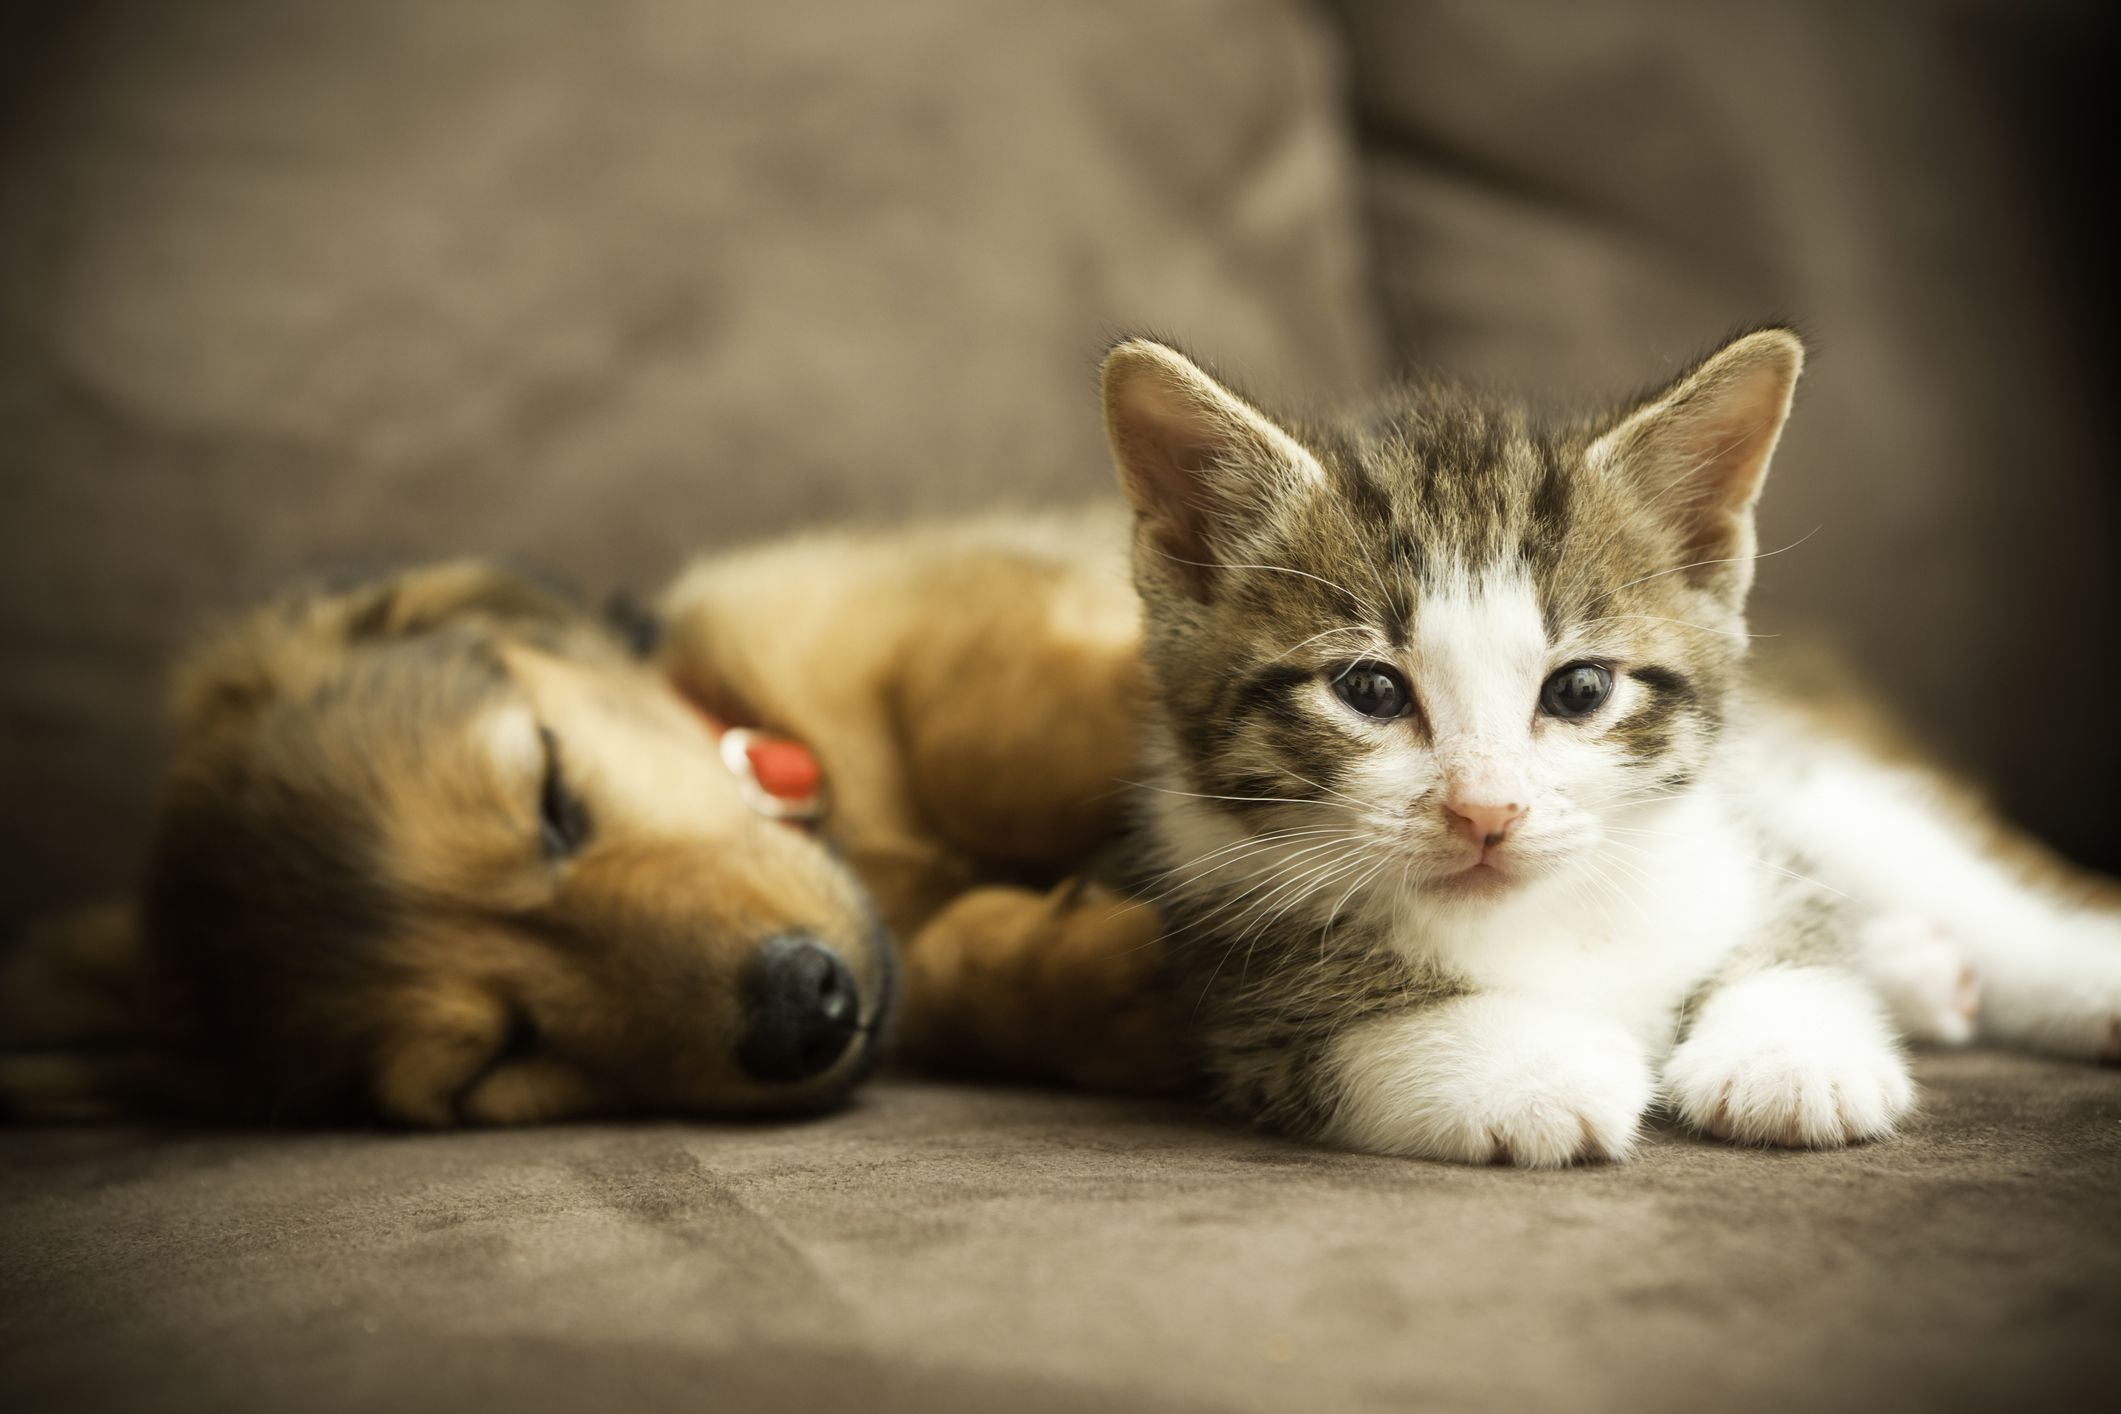 why cats are better than dogs essay Why cats are better than dogs many people today own a pet or some sort, but the most popular are dogs and cats everyone has their own particular reason for their choice of pet, but i prefer cats over dogs because cats are more independent than dogs.